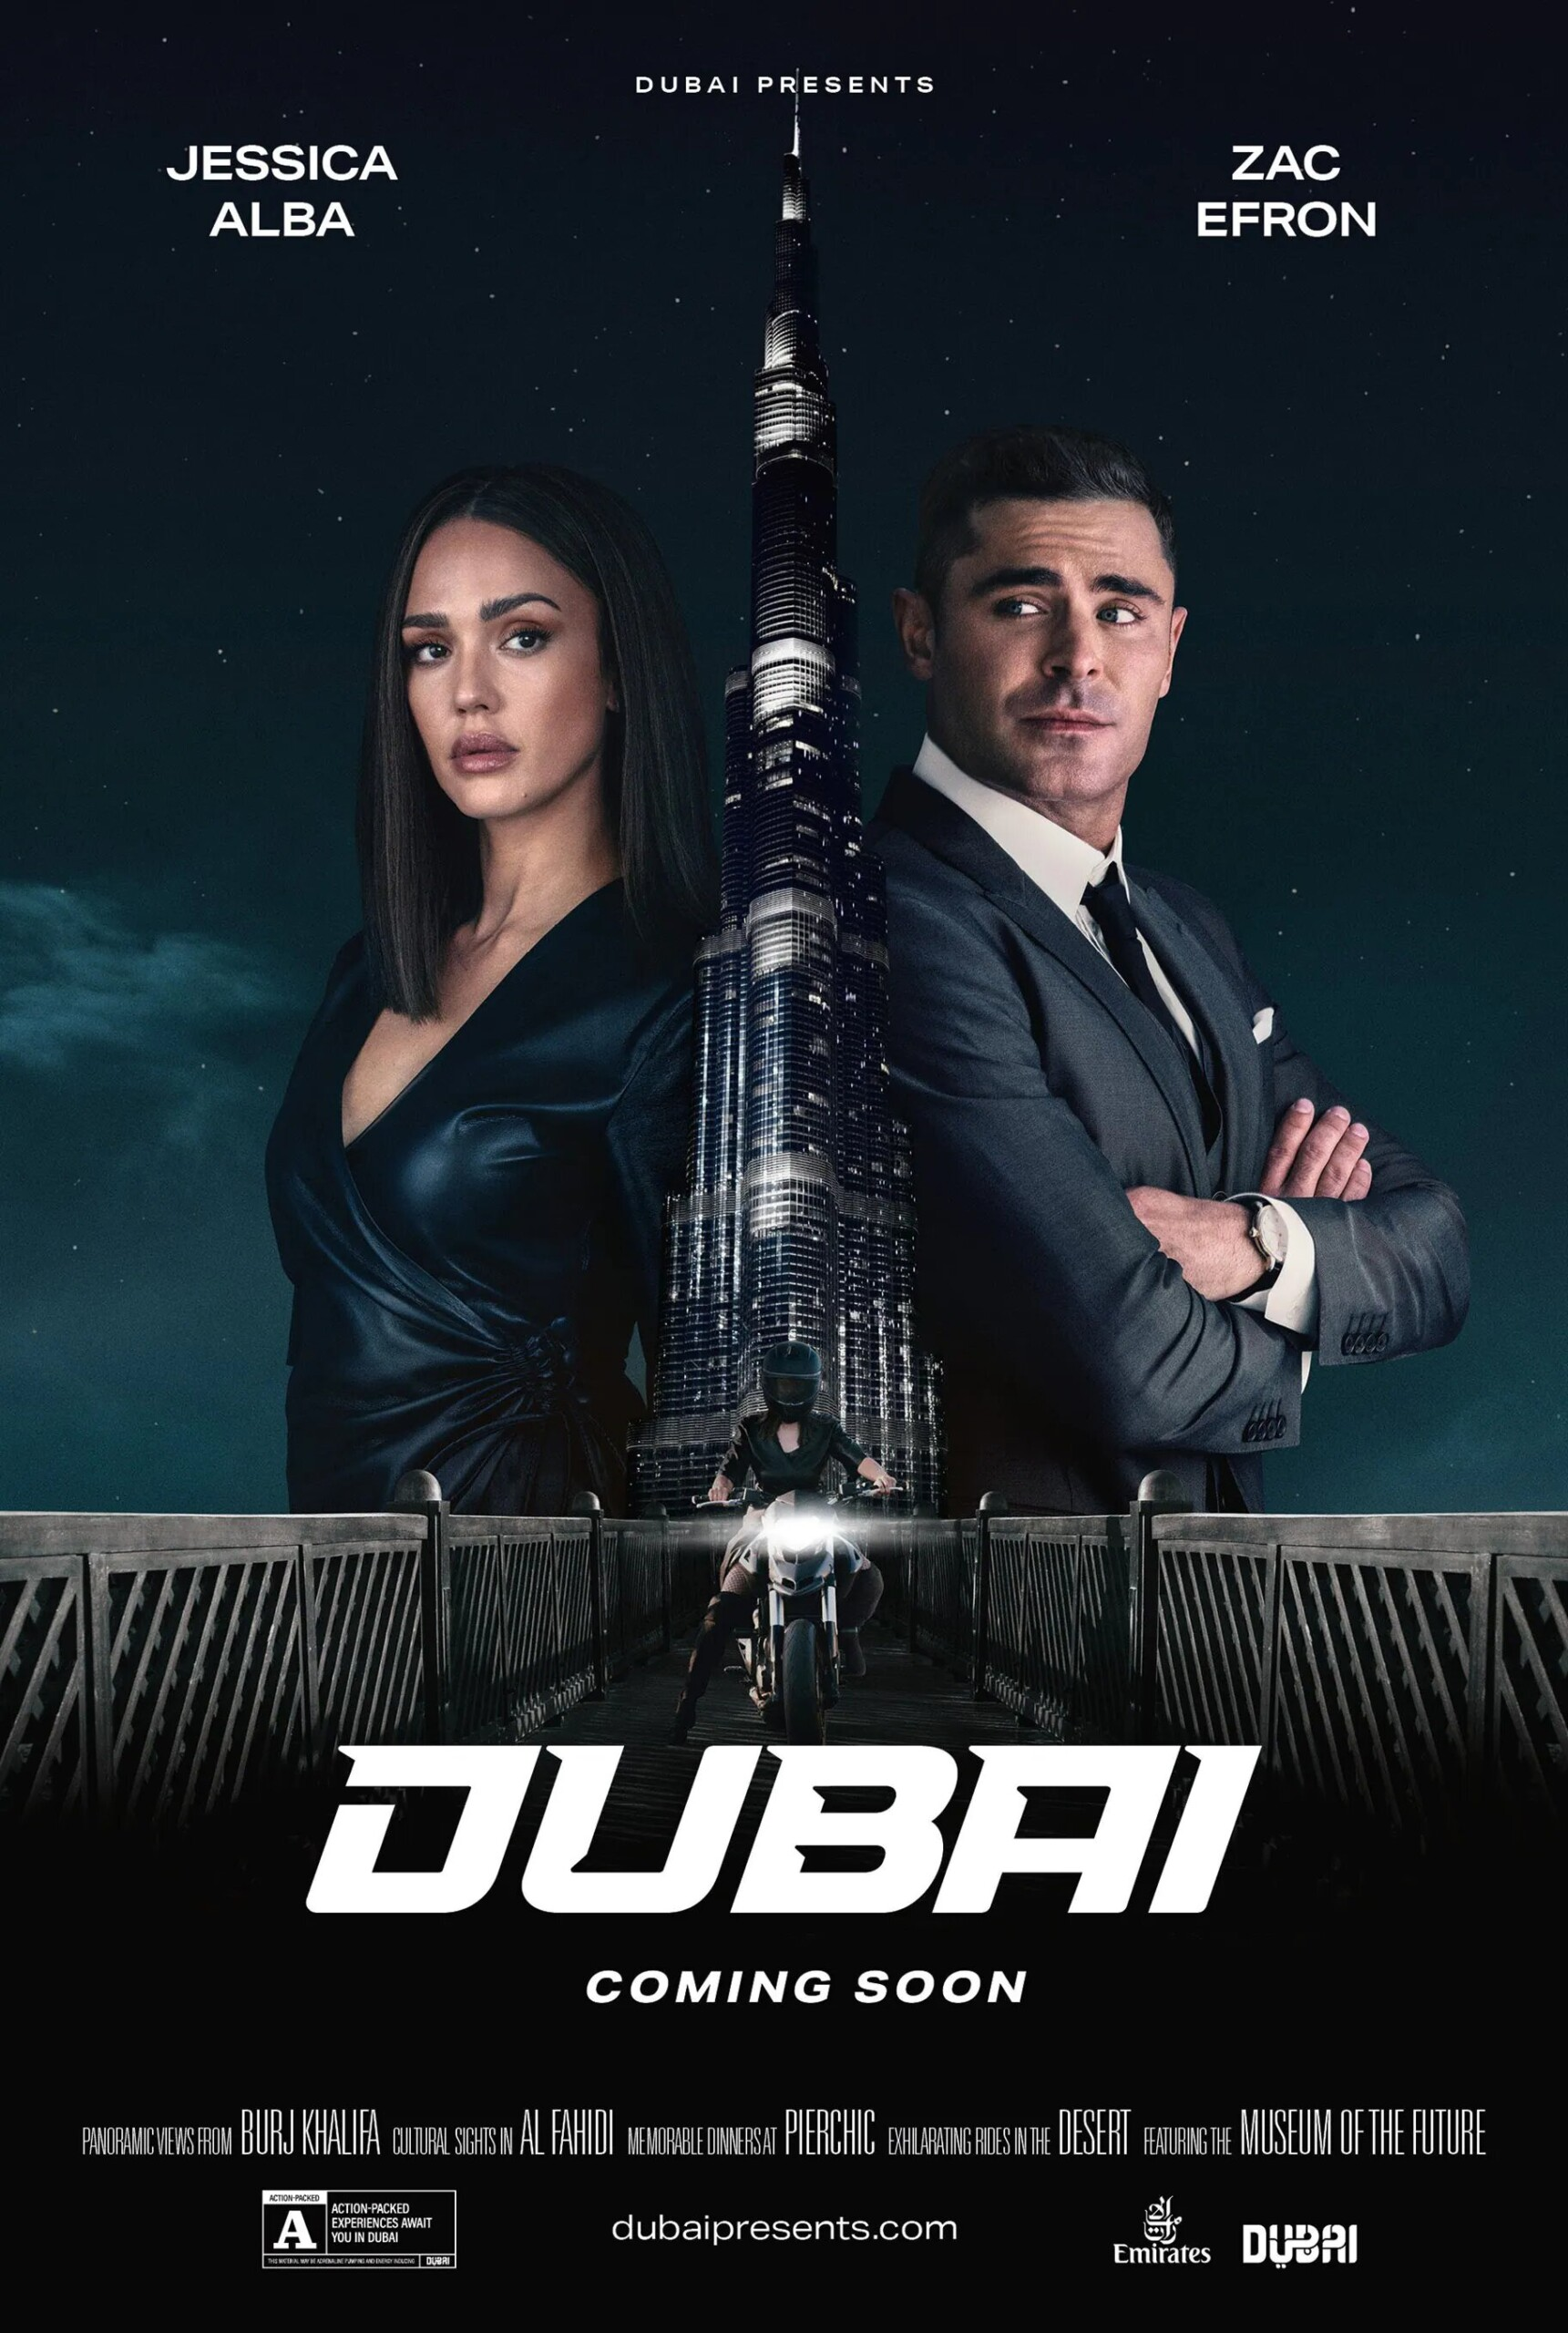 Dubai tourism office pays Zac Efron and Jessica Alba for an ad